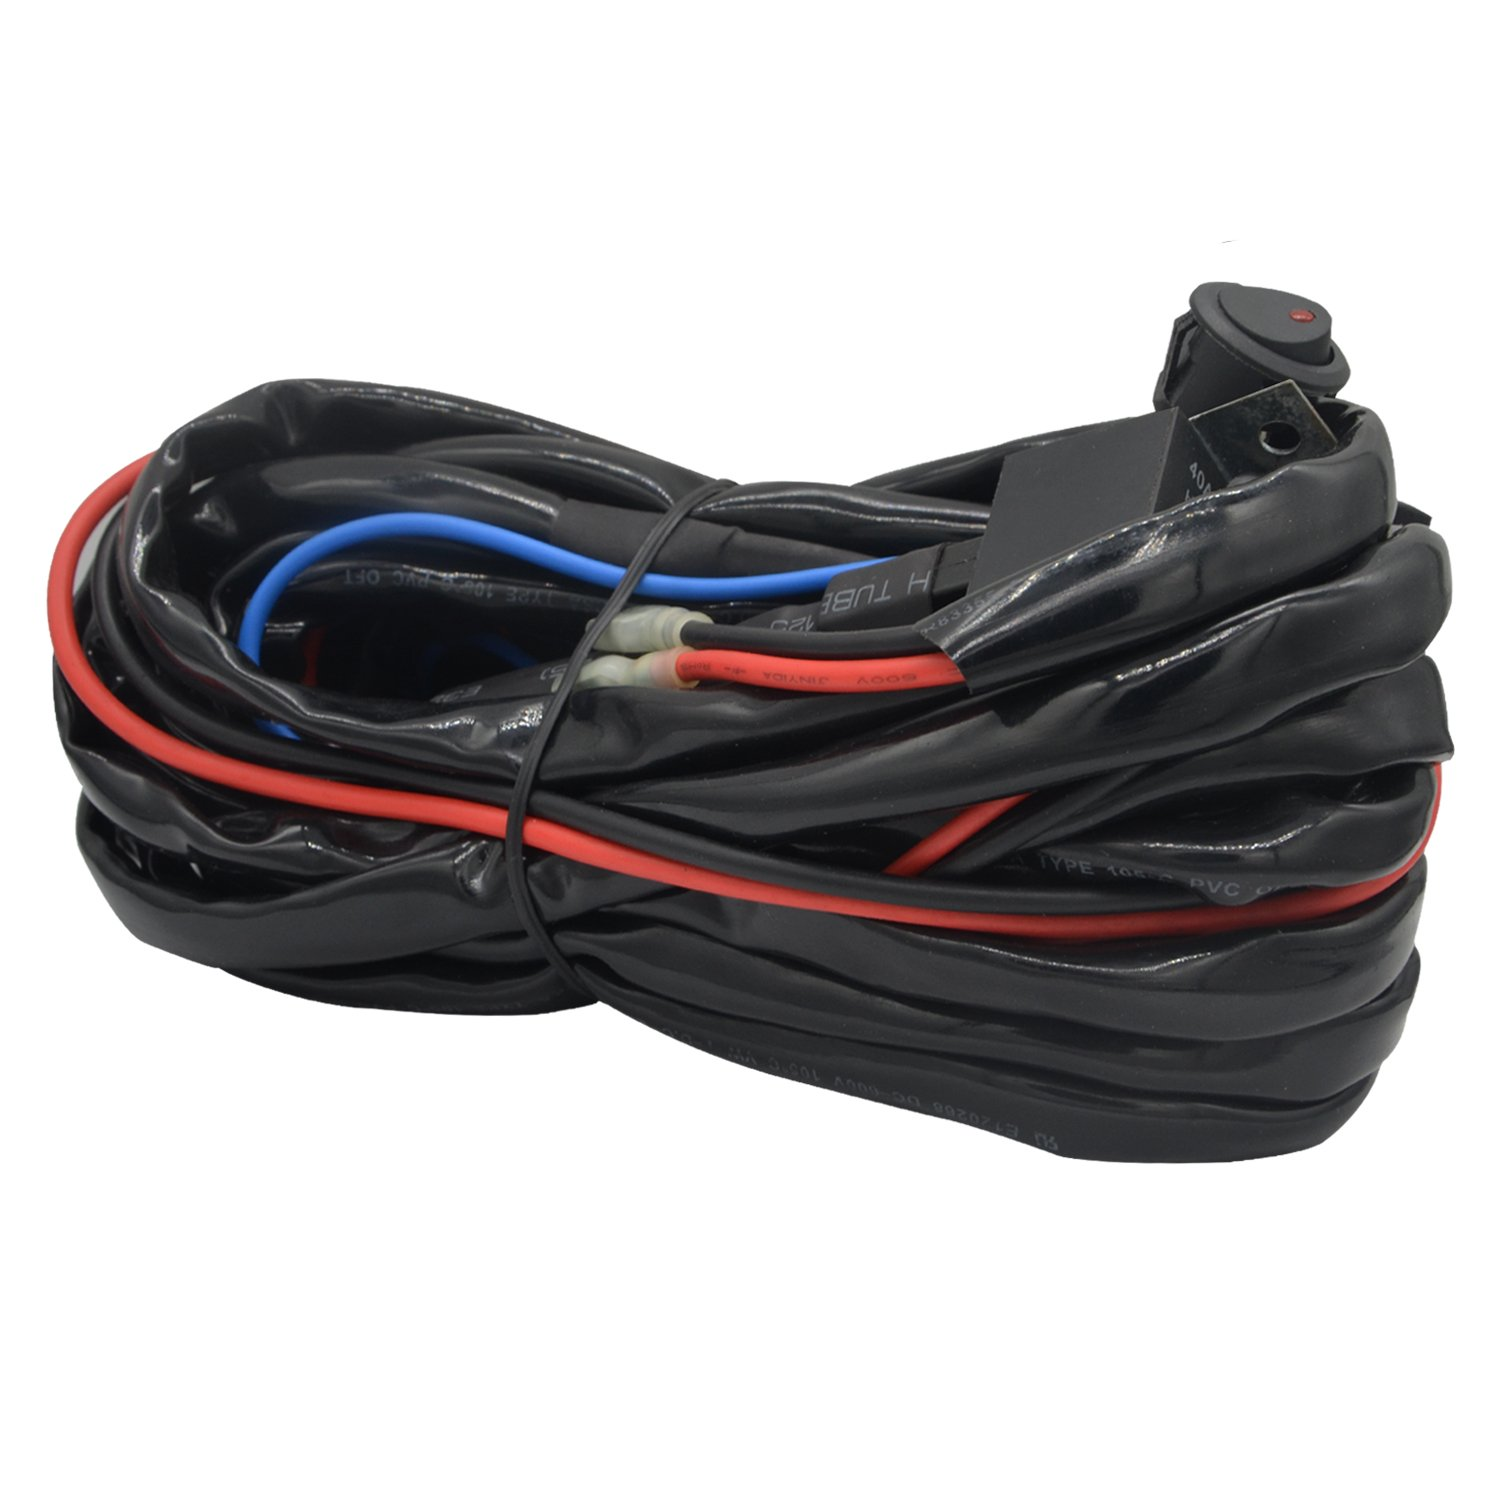 71hdbgsGjCL._SL1500_ amazon com wiring harnesses electrical automotive ksc-wa100 wiring harness at webbmarketing.co